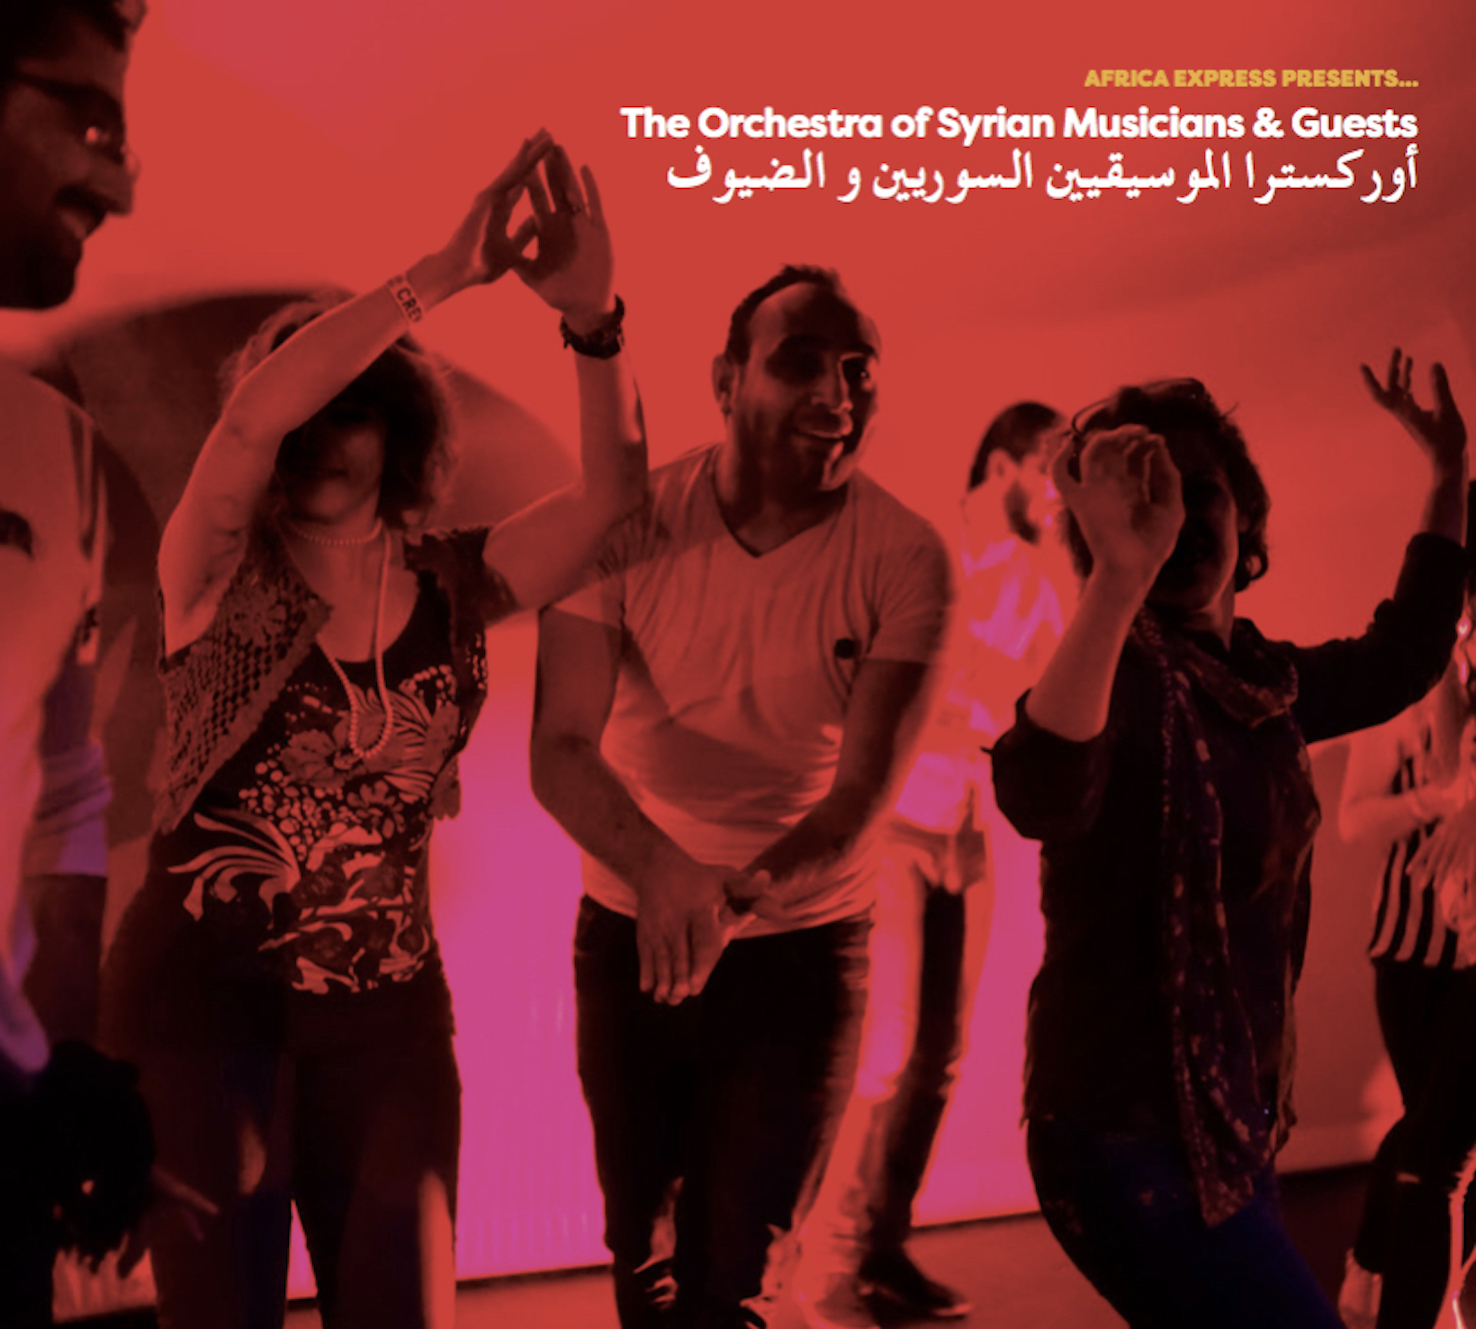 Africa Express Presents.... The Orchestra of Syrian Musicians & Guests CD - Africa Express Shop